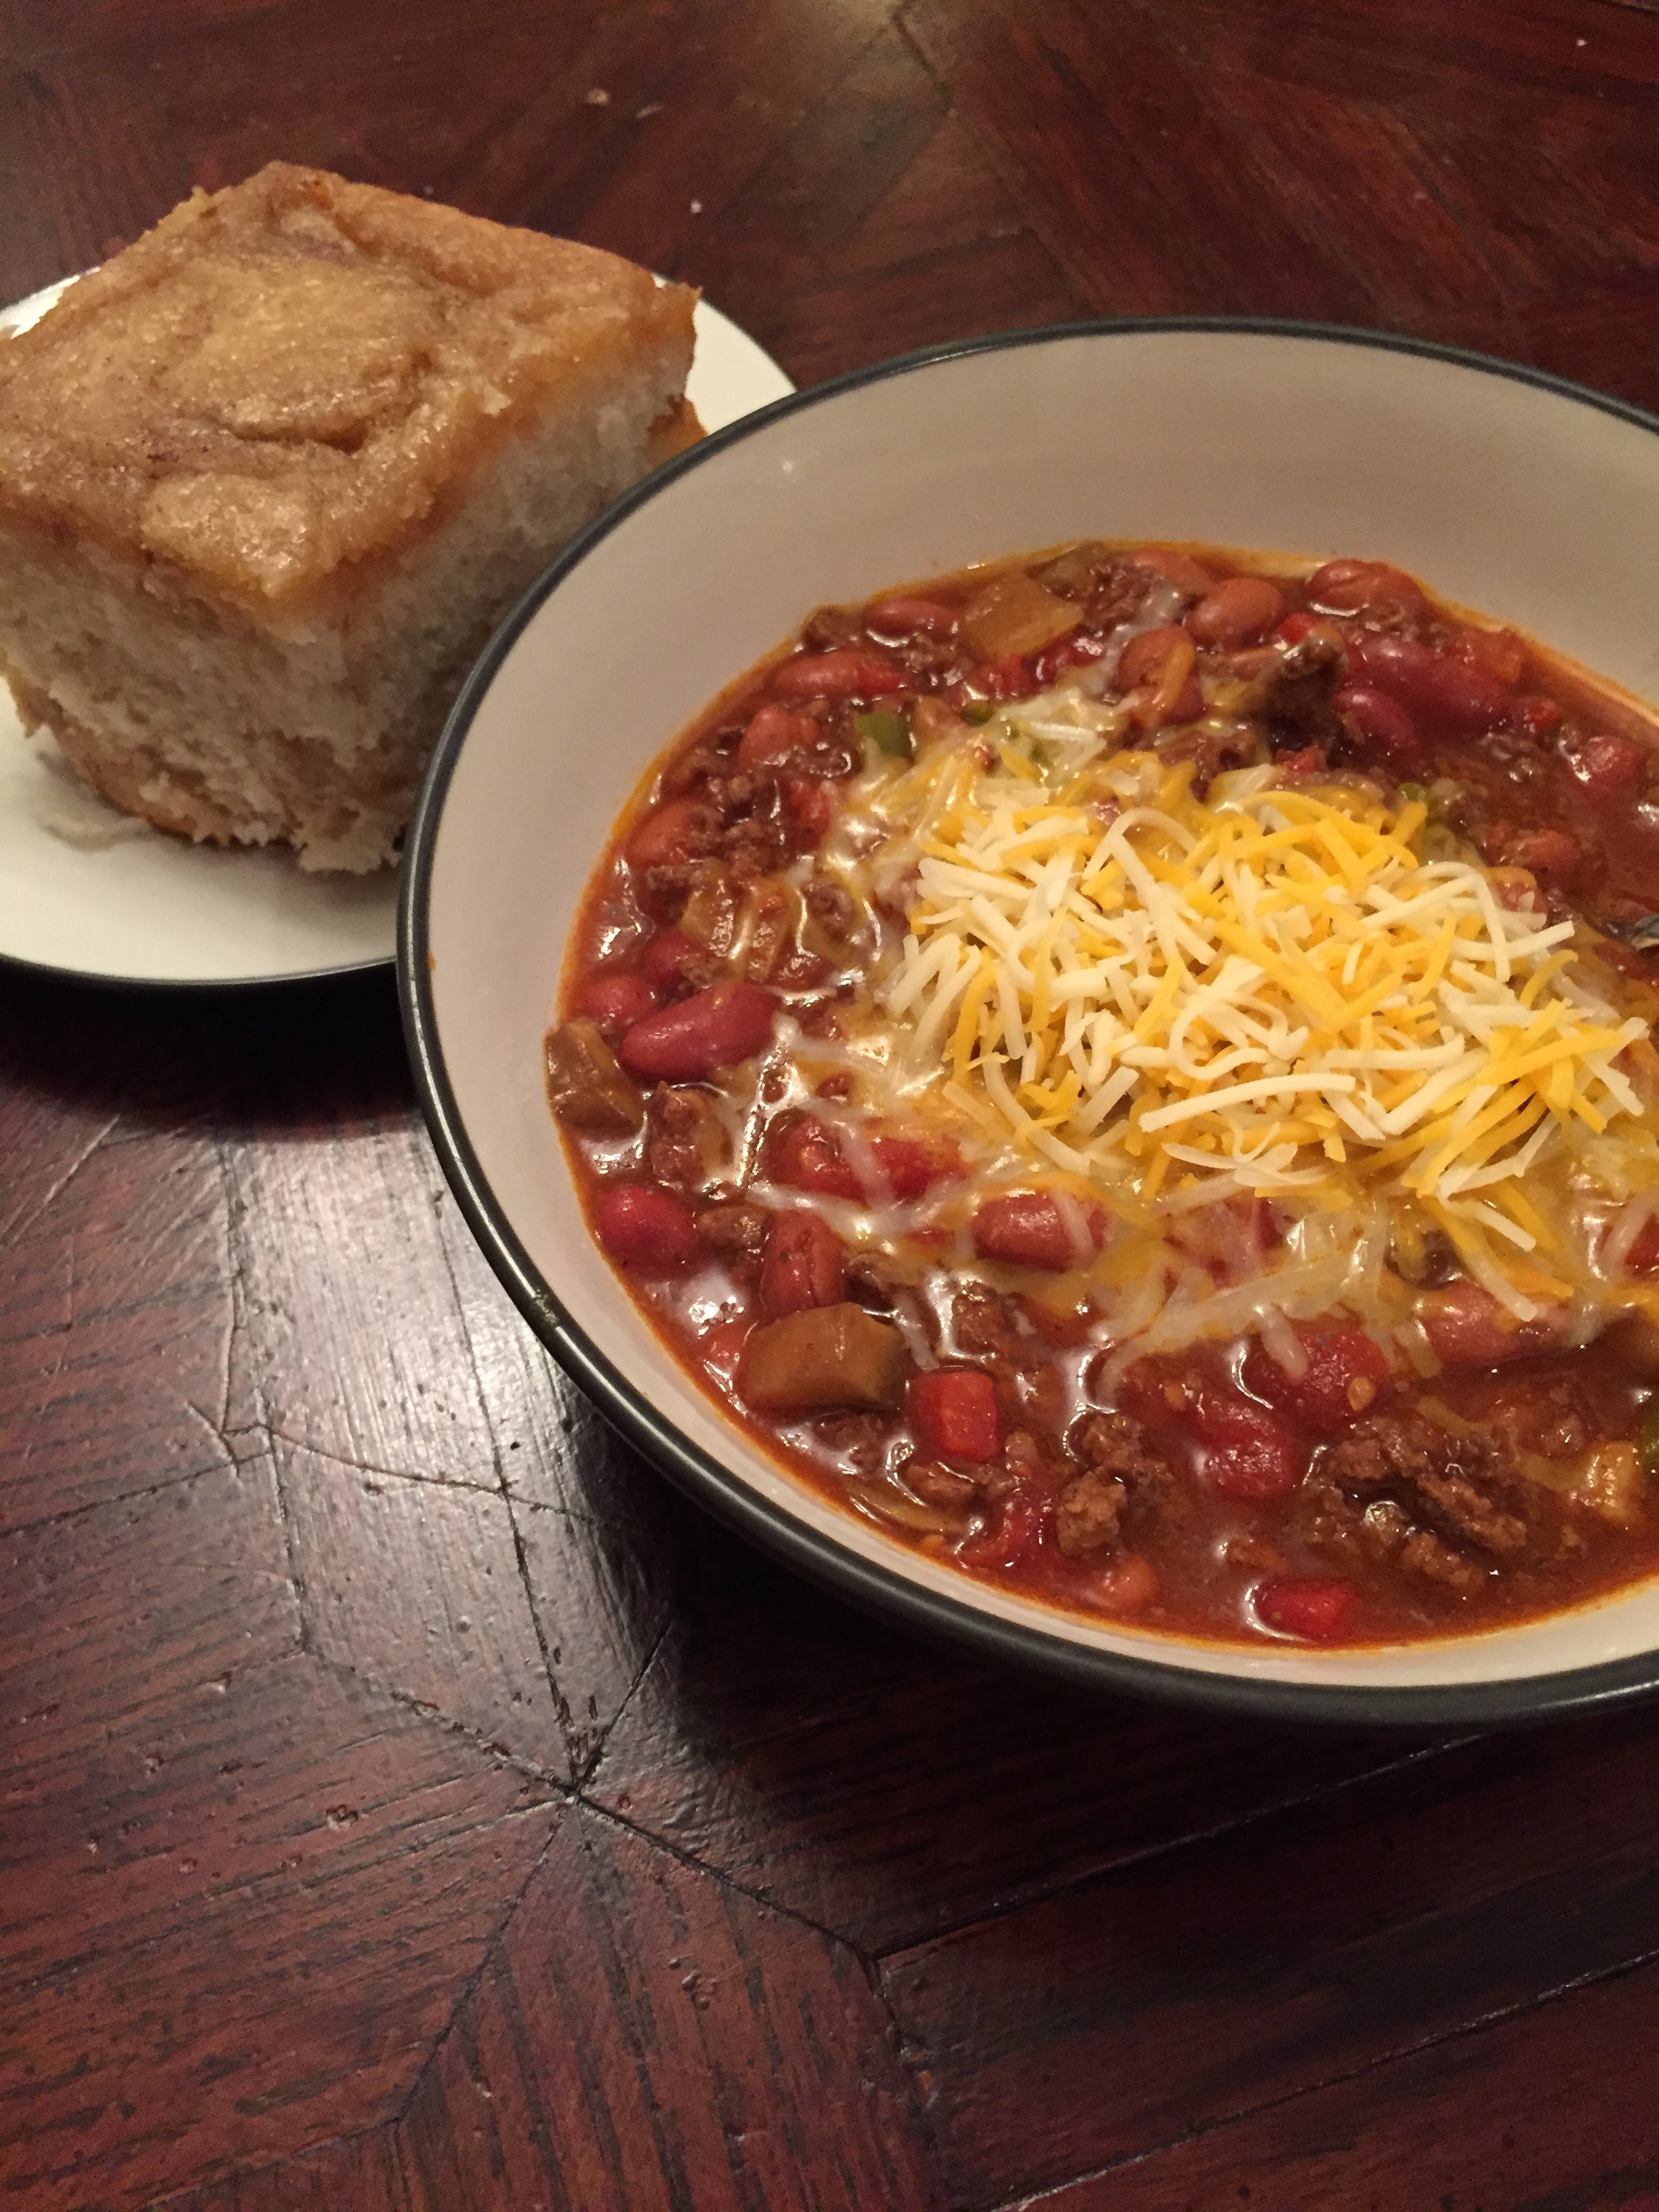 Slow Cooker Harvest Chili with Homemade Cinnamon Rolls